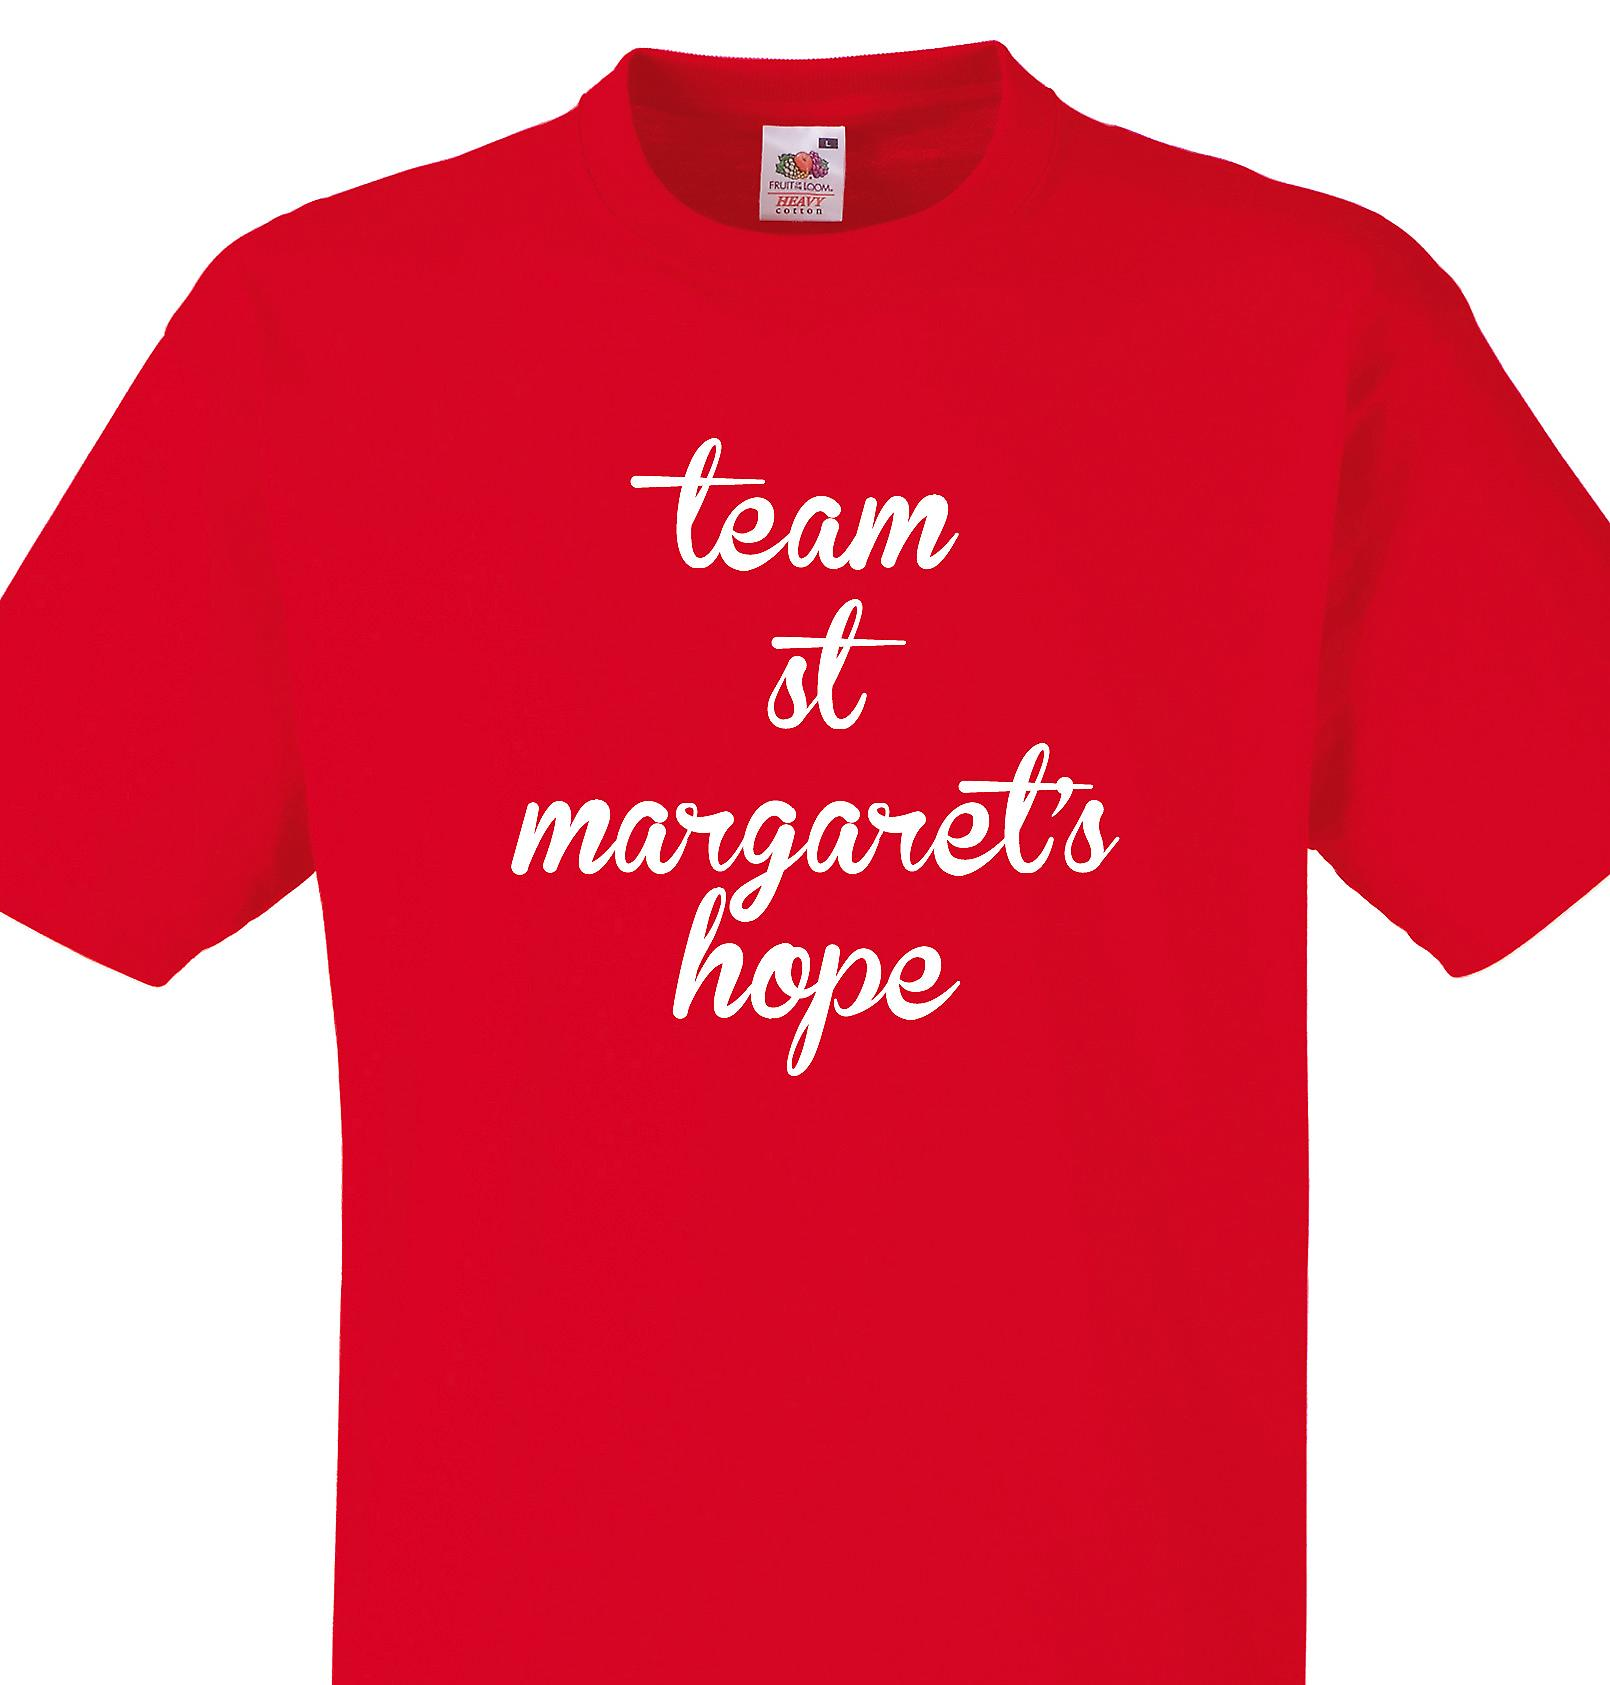 Team St margaret's hope Red T shirt